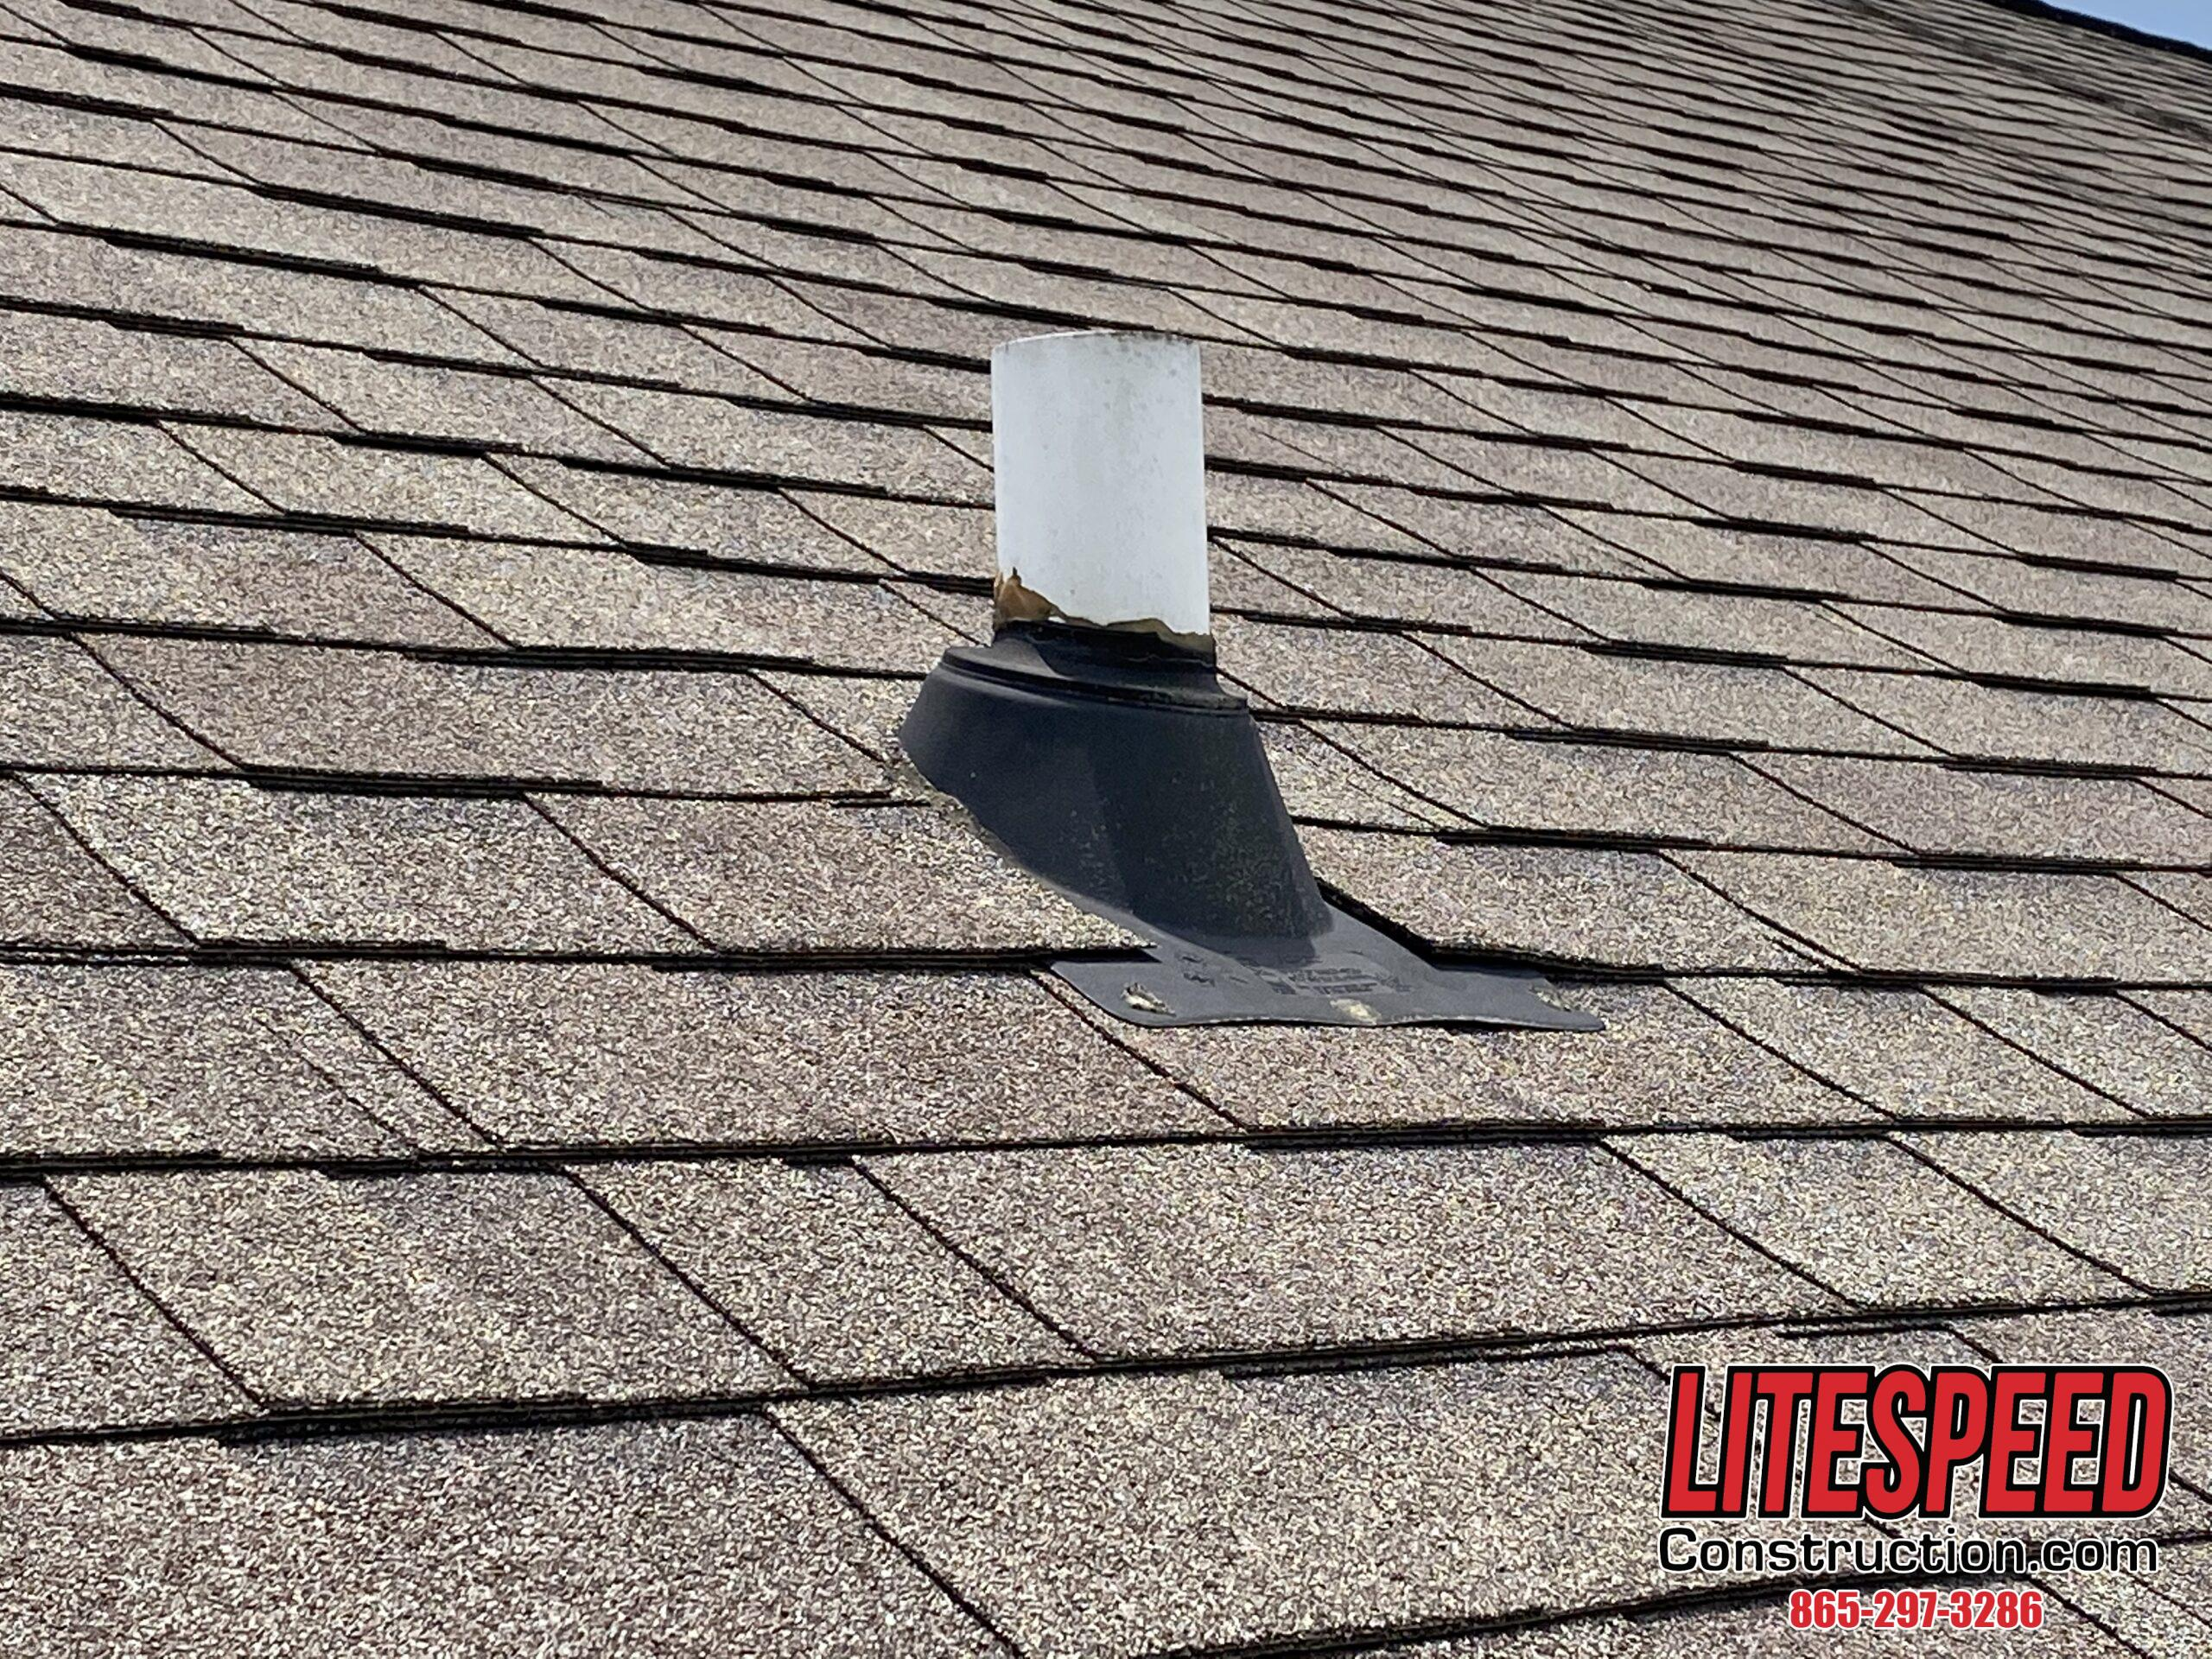 This is a picture of a pipe boot on a steep roof